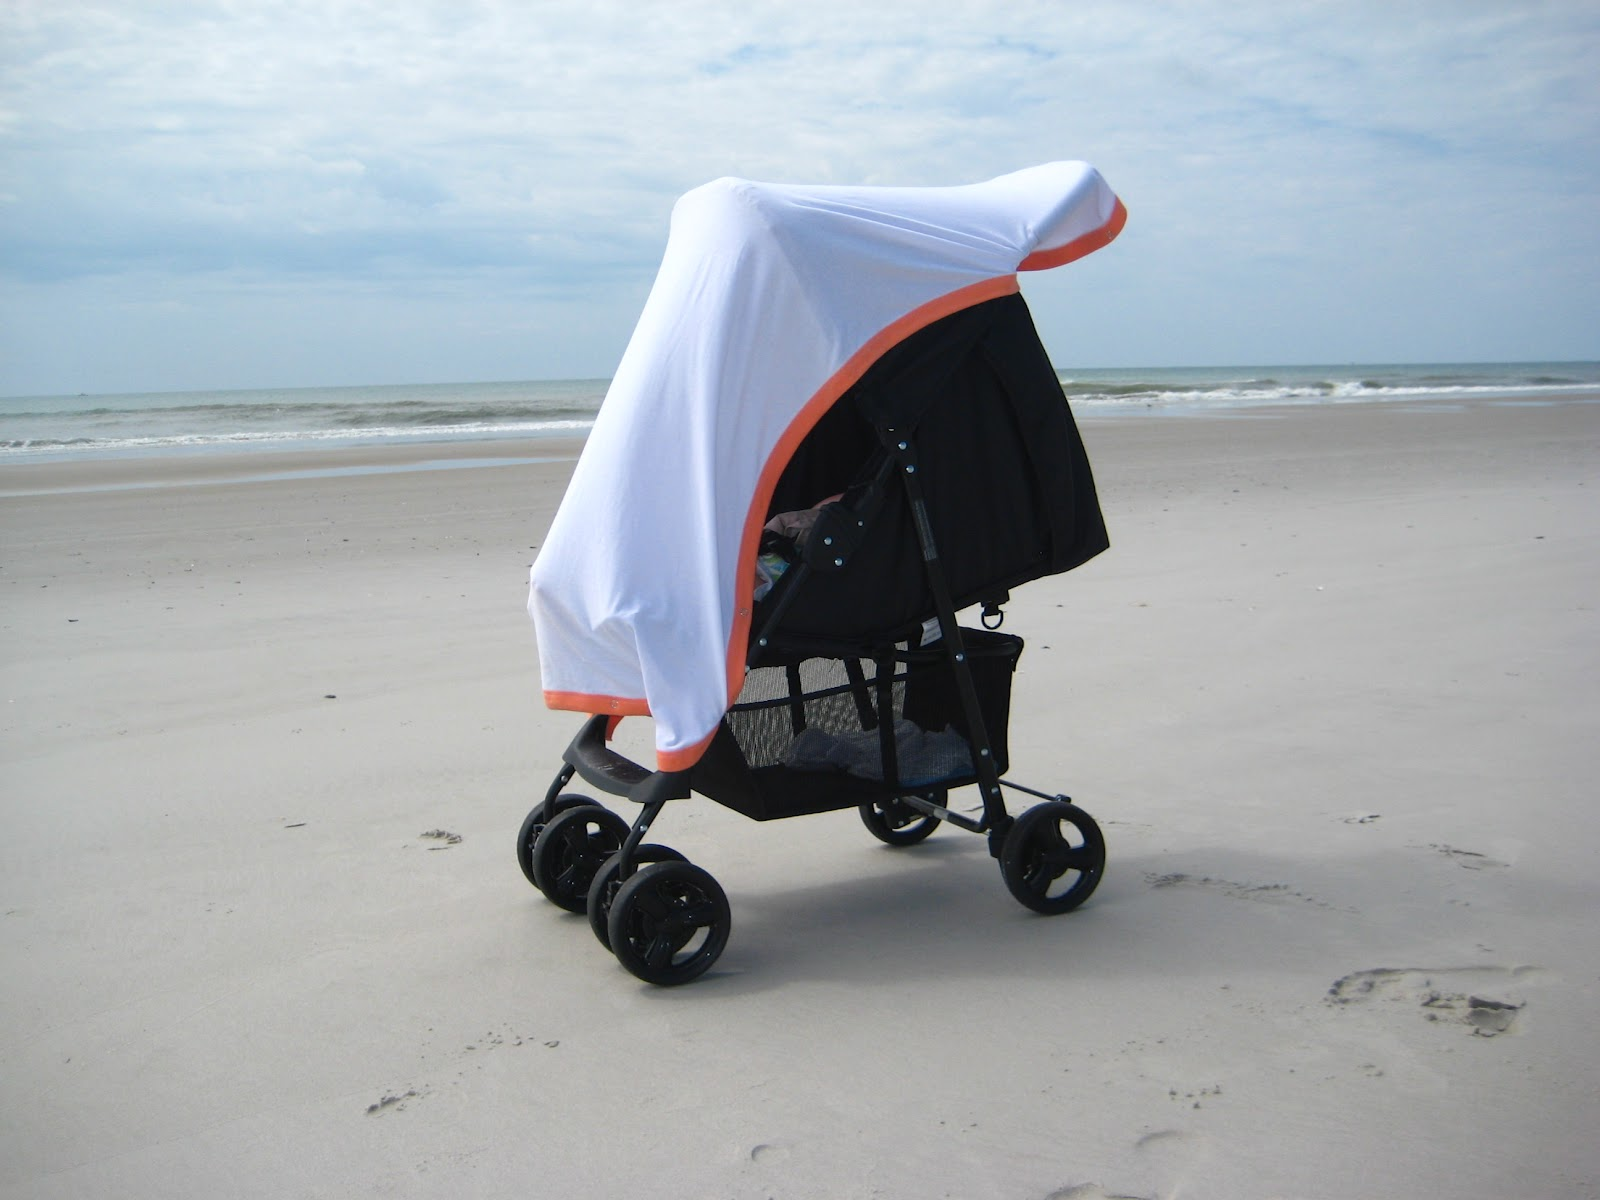 We're in love with this cool gear for family fun at the beach